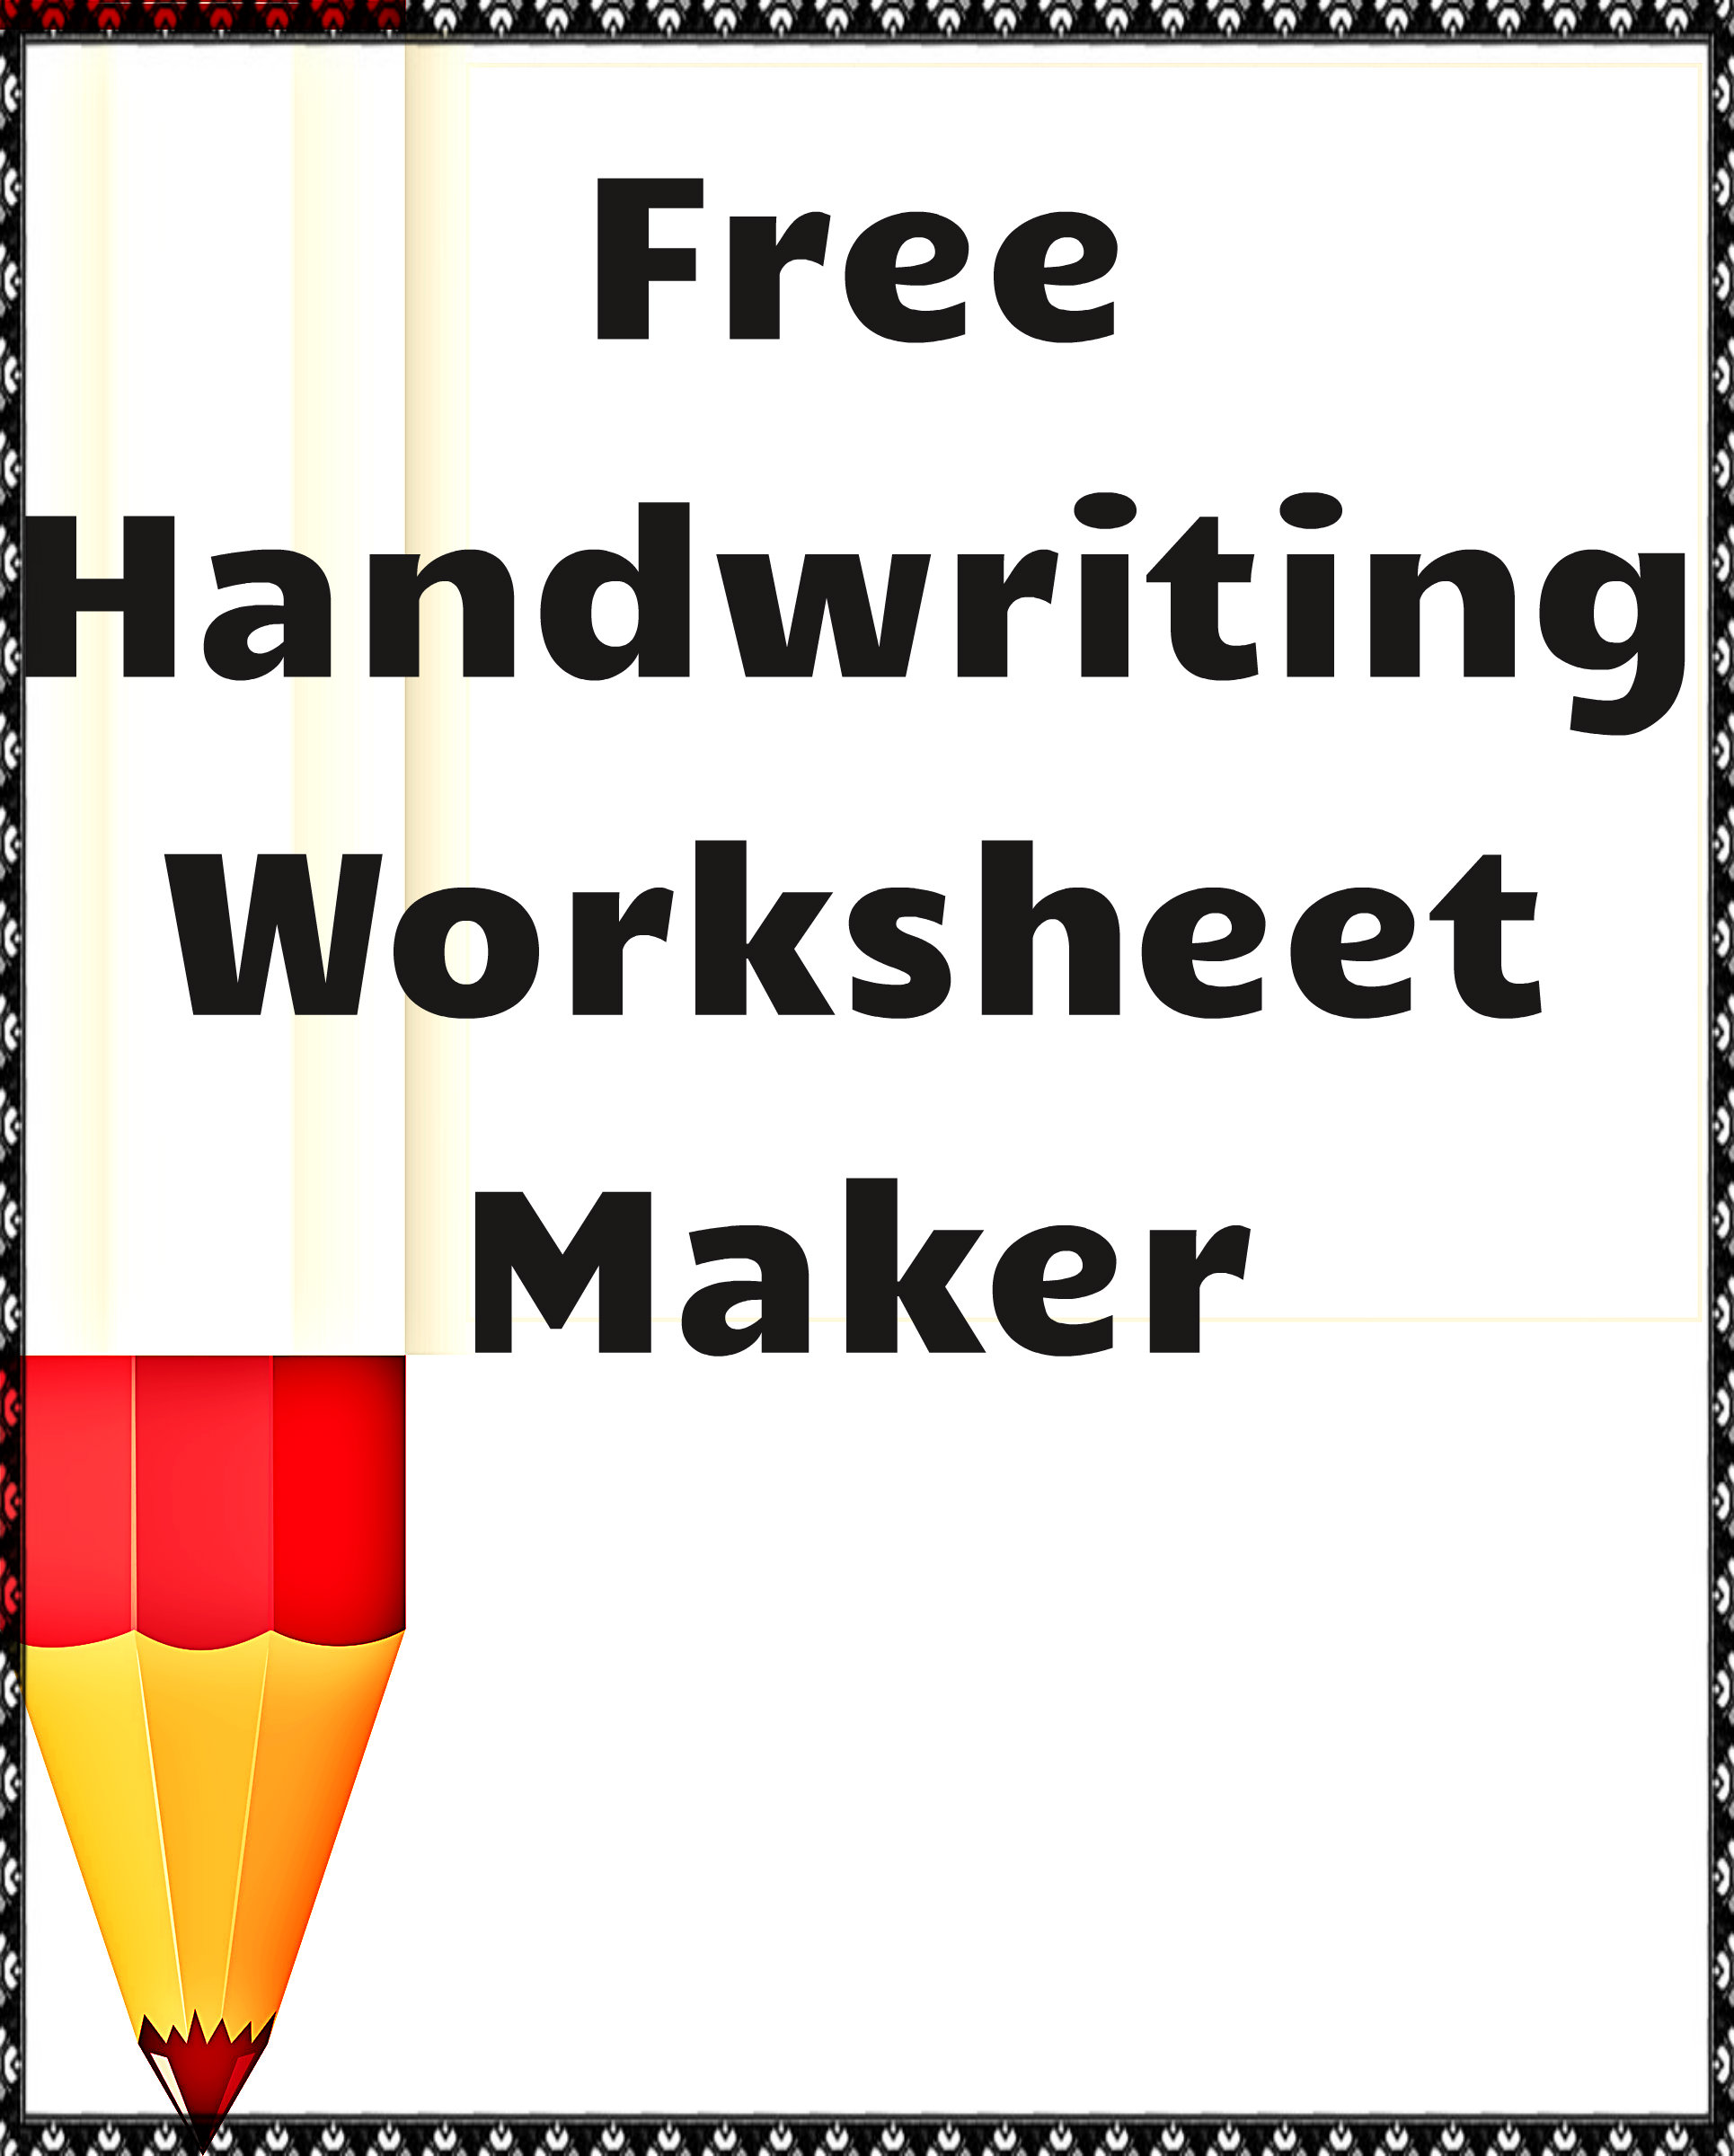 Printables Free Worksheet Creator generate handwriting worksheets pichaglobal worksheet maker free classroom tools readyteacher com